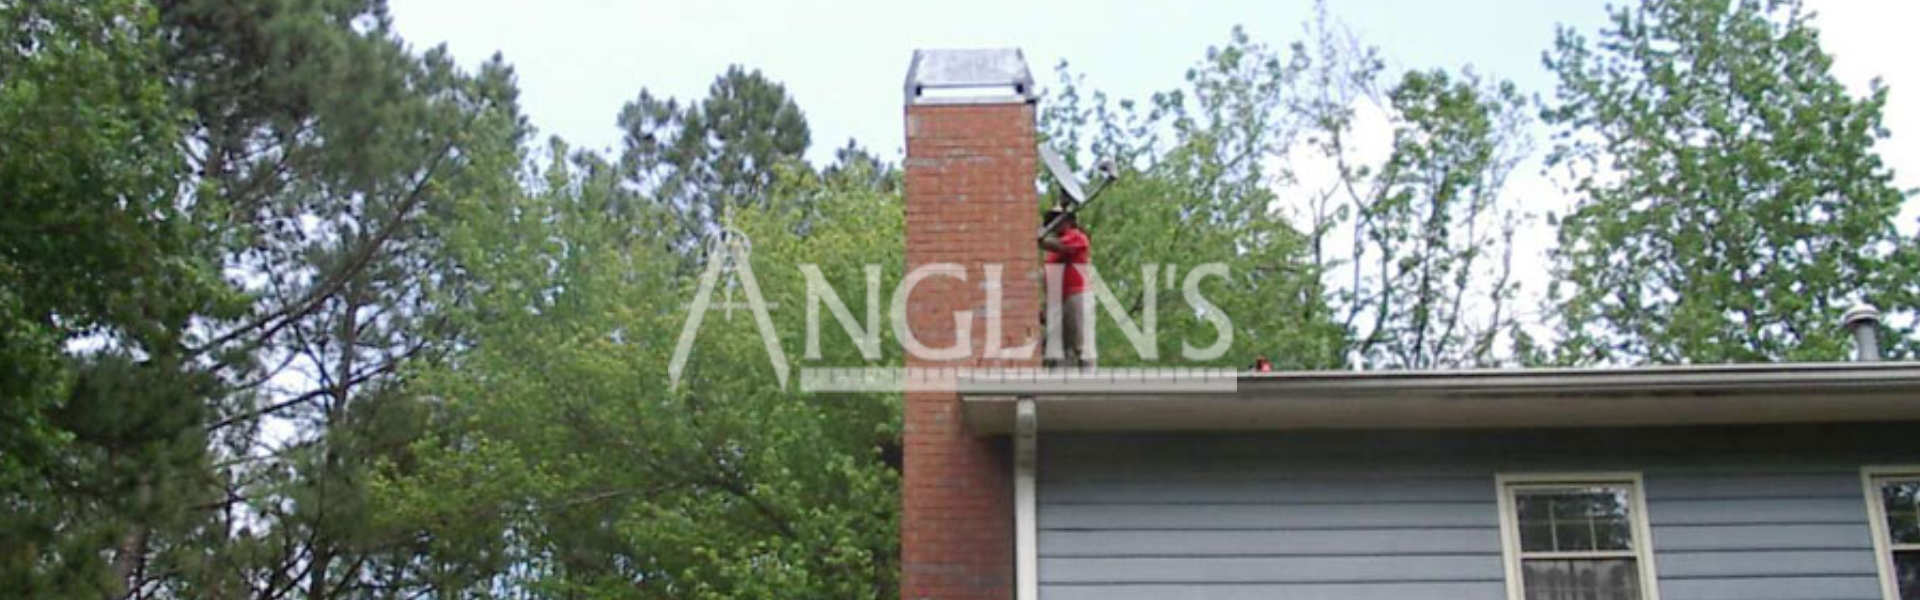 anglins worker on a roof repairing a chimney